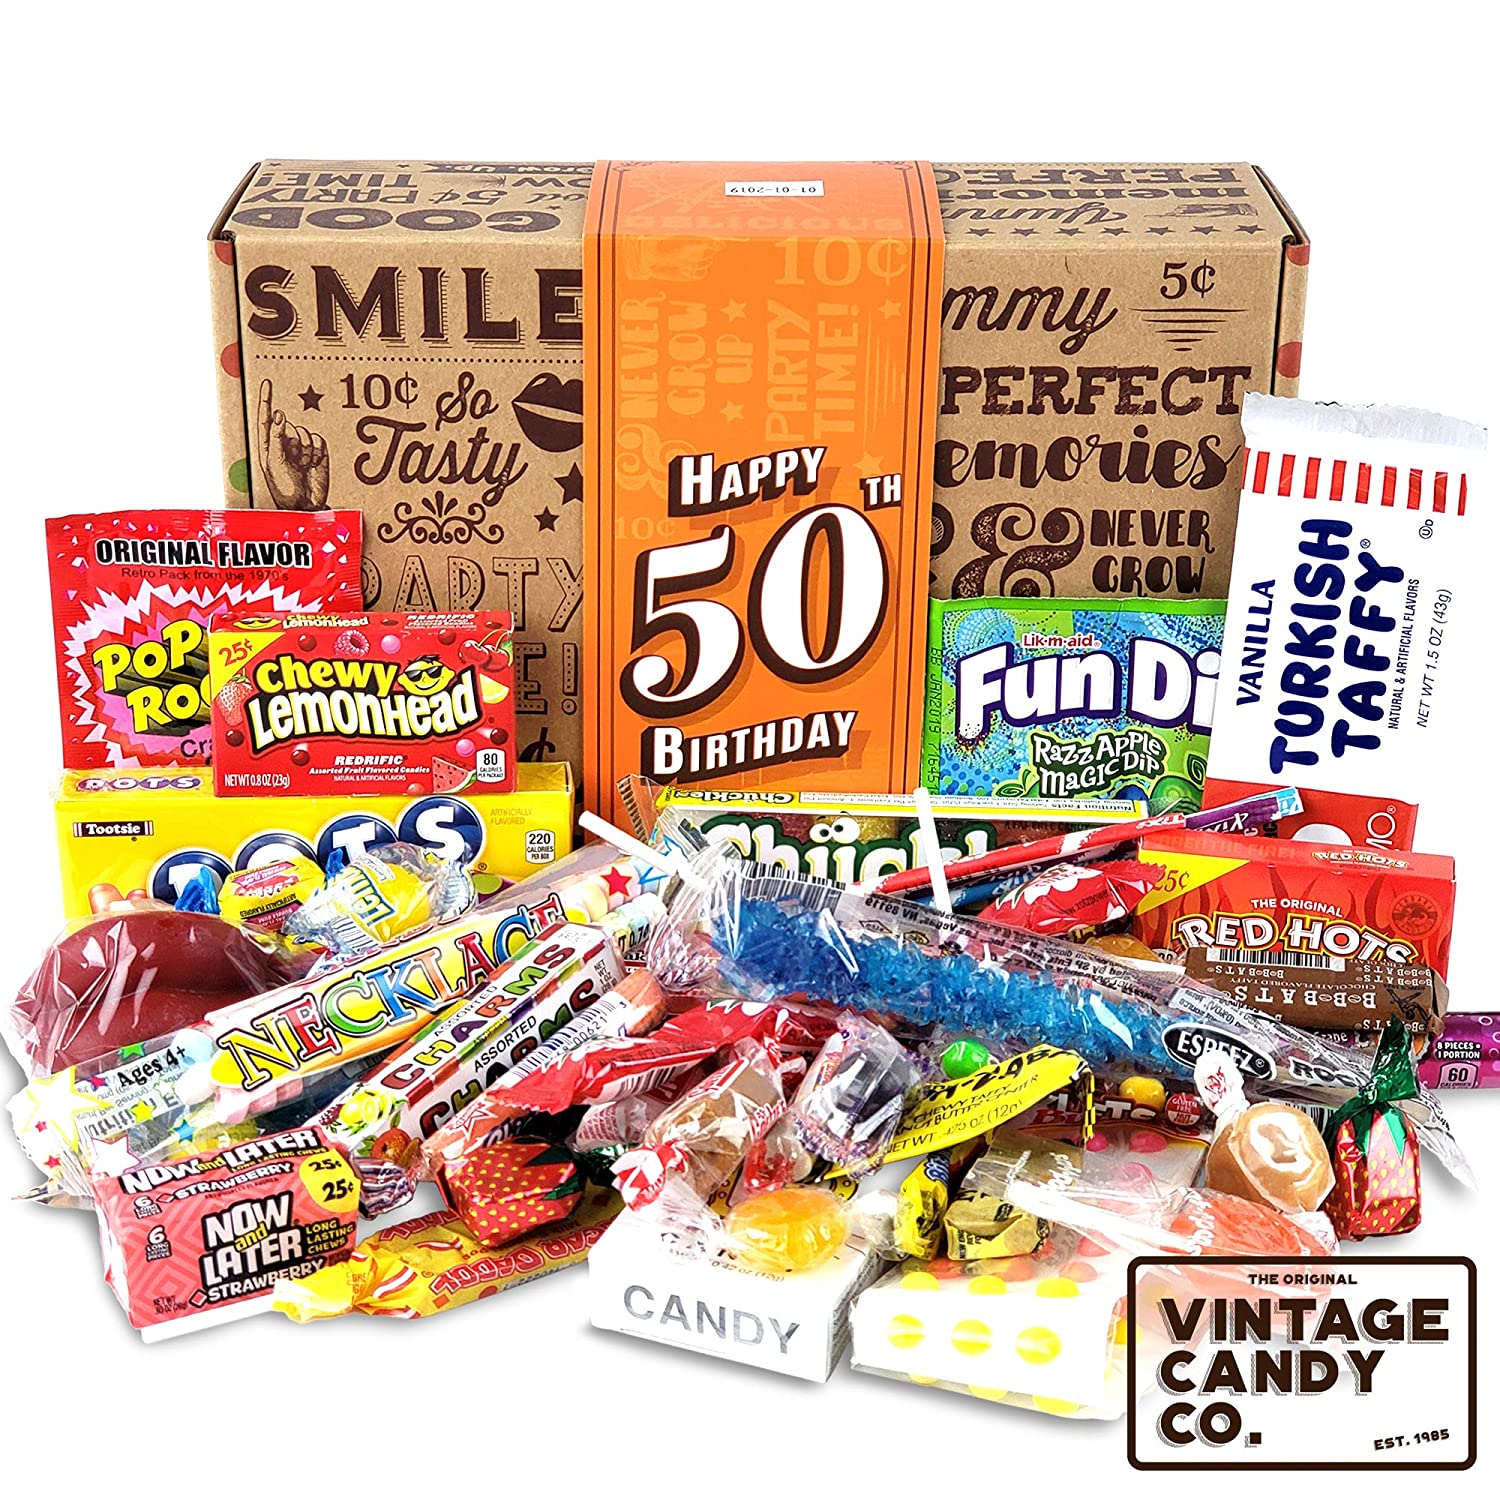 VINTAGE CANDY CO. 50TH BIRTHDAY RETRO